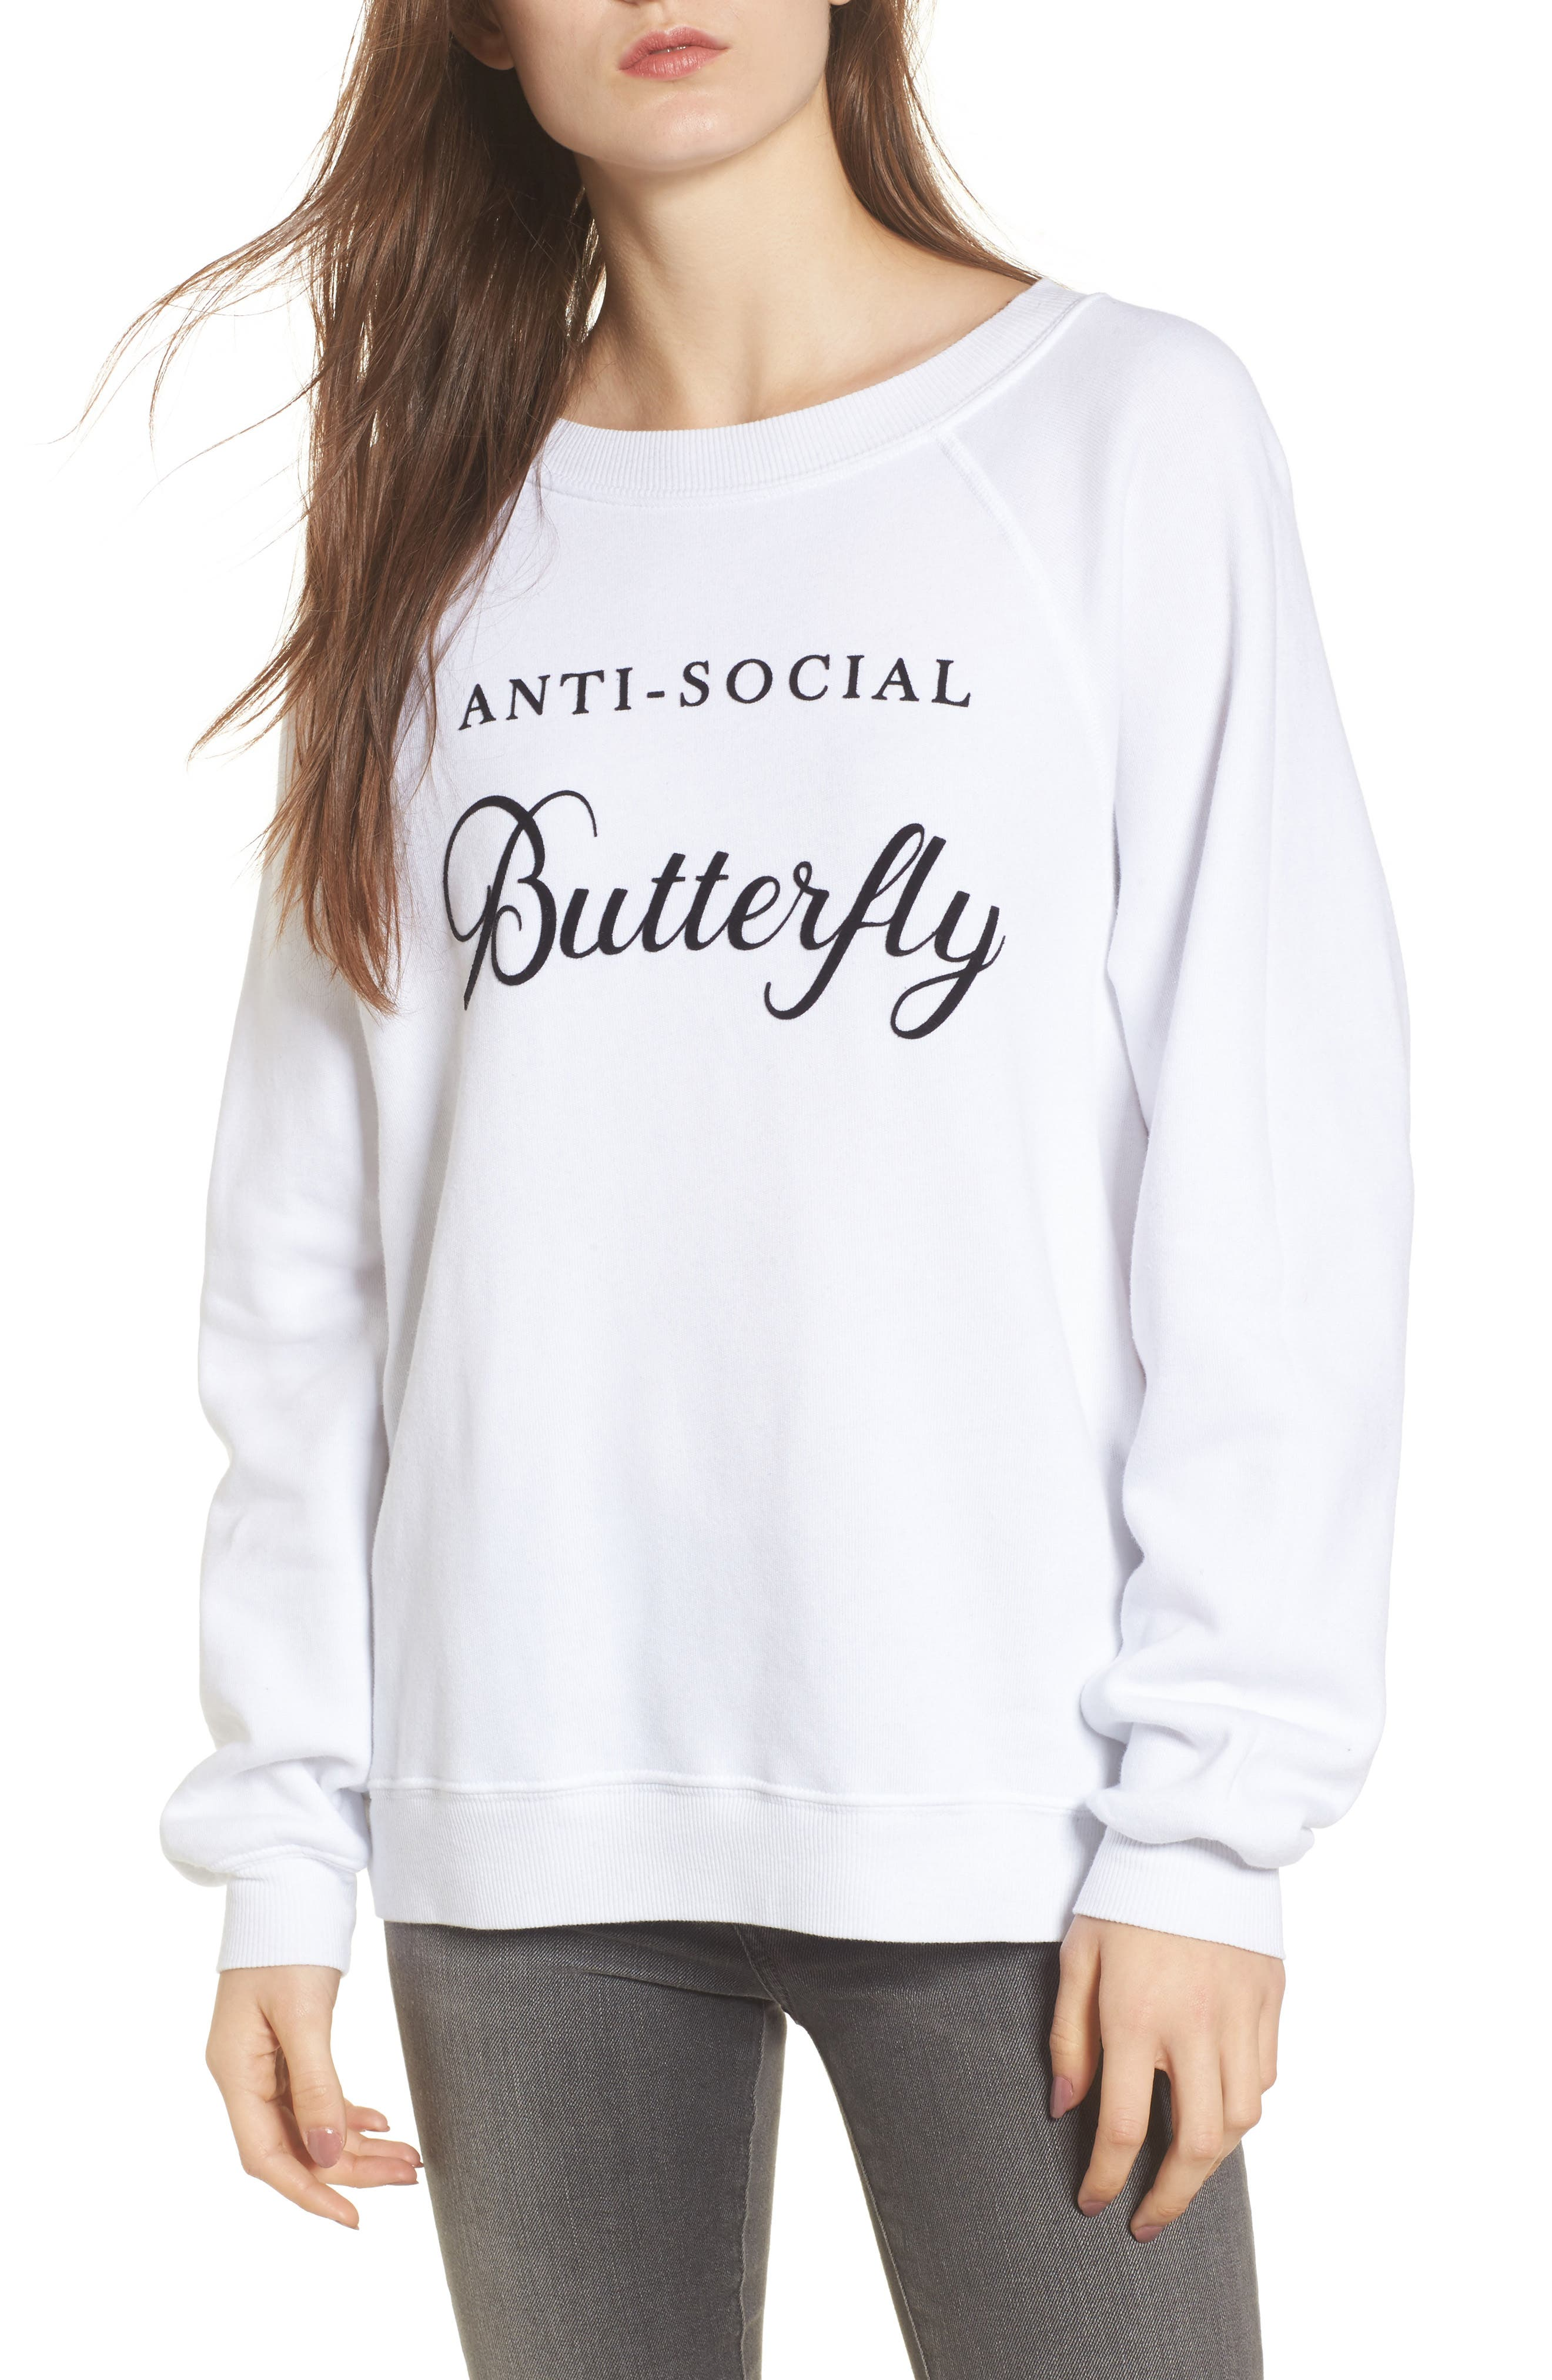 Anti-Social Butterfly Sweatshirt,                         Main,                         color, Clean White